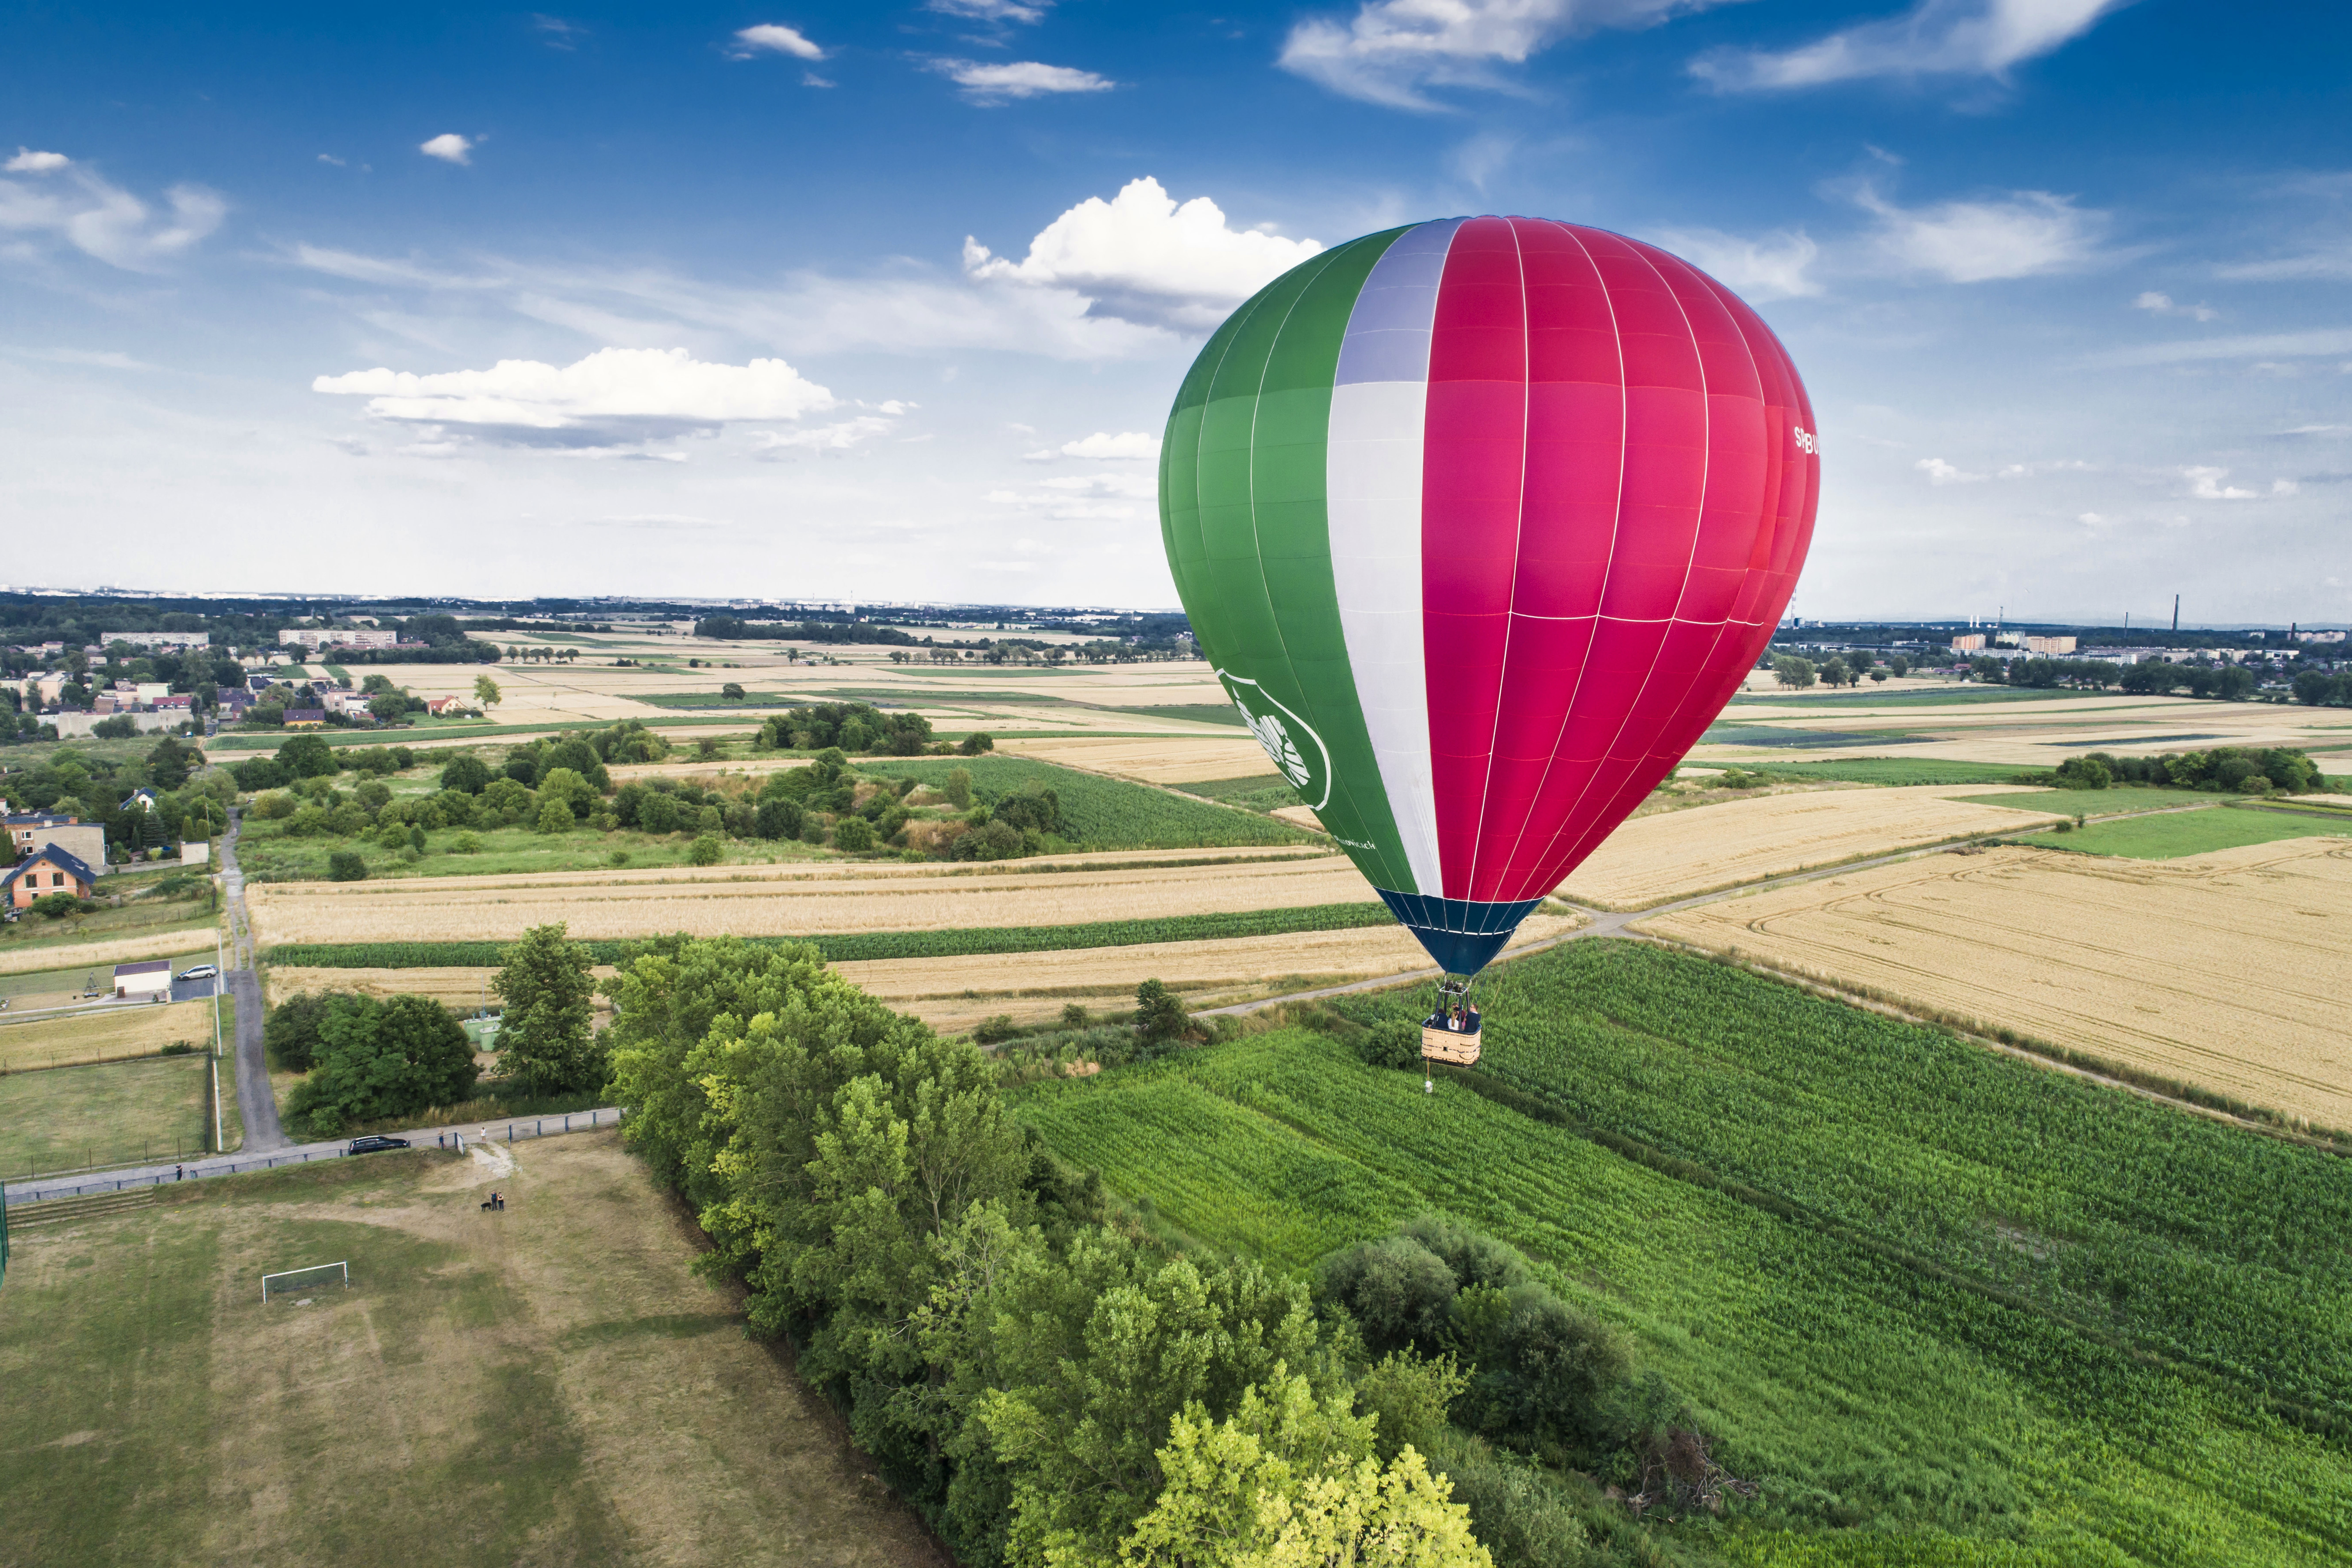 Green, pink and white striped hot air balloon flying above the fields.